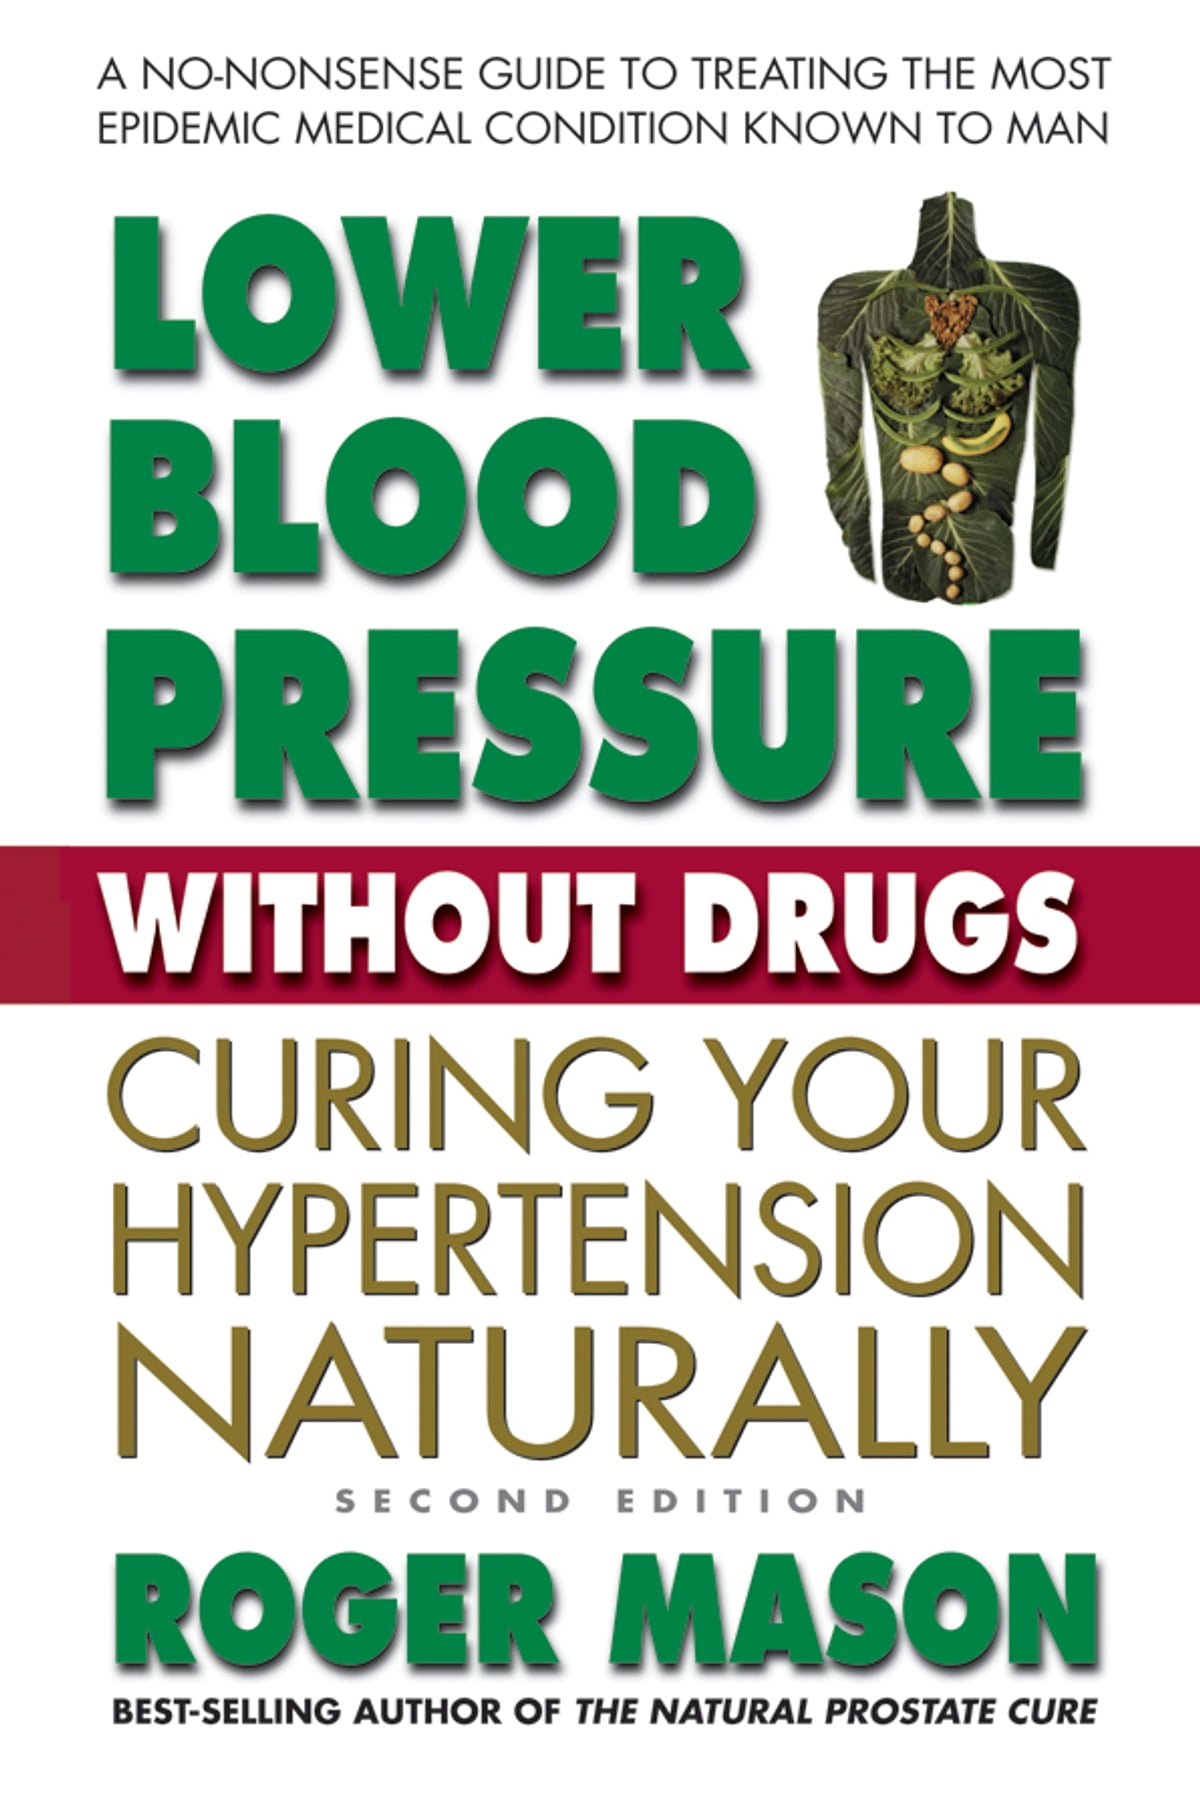 How to lower pressure without drugs